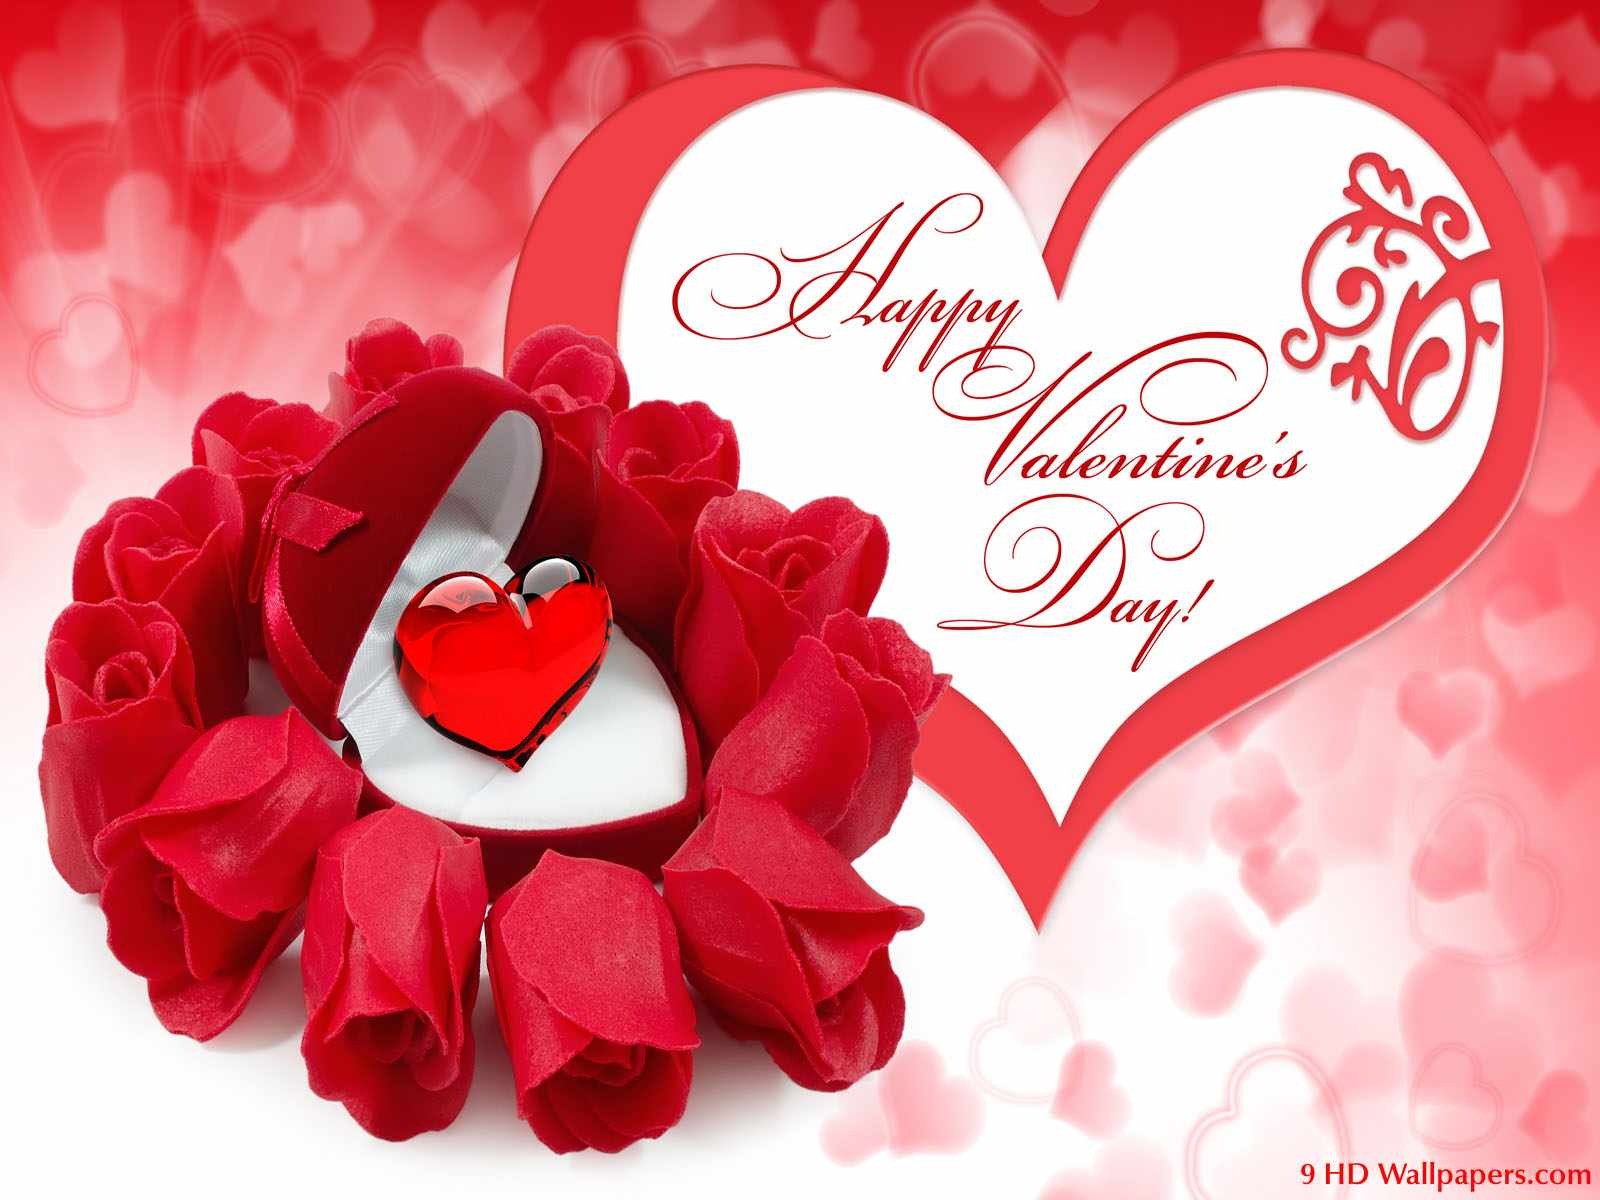 valentines day greeting cards for HimBoyfriend Pictures and Photos. 1600 x 1200.Funny Electronic Christmas Cards Free